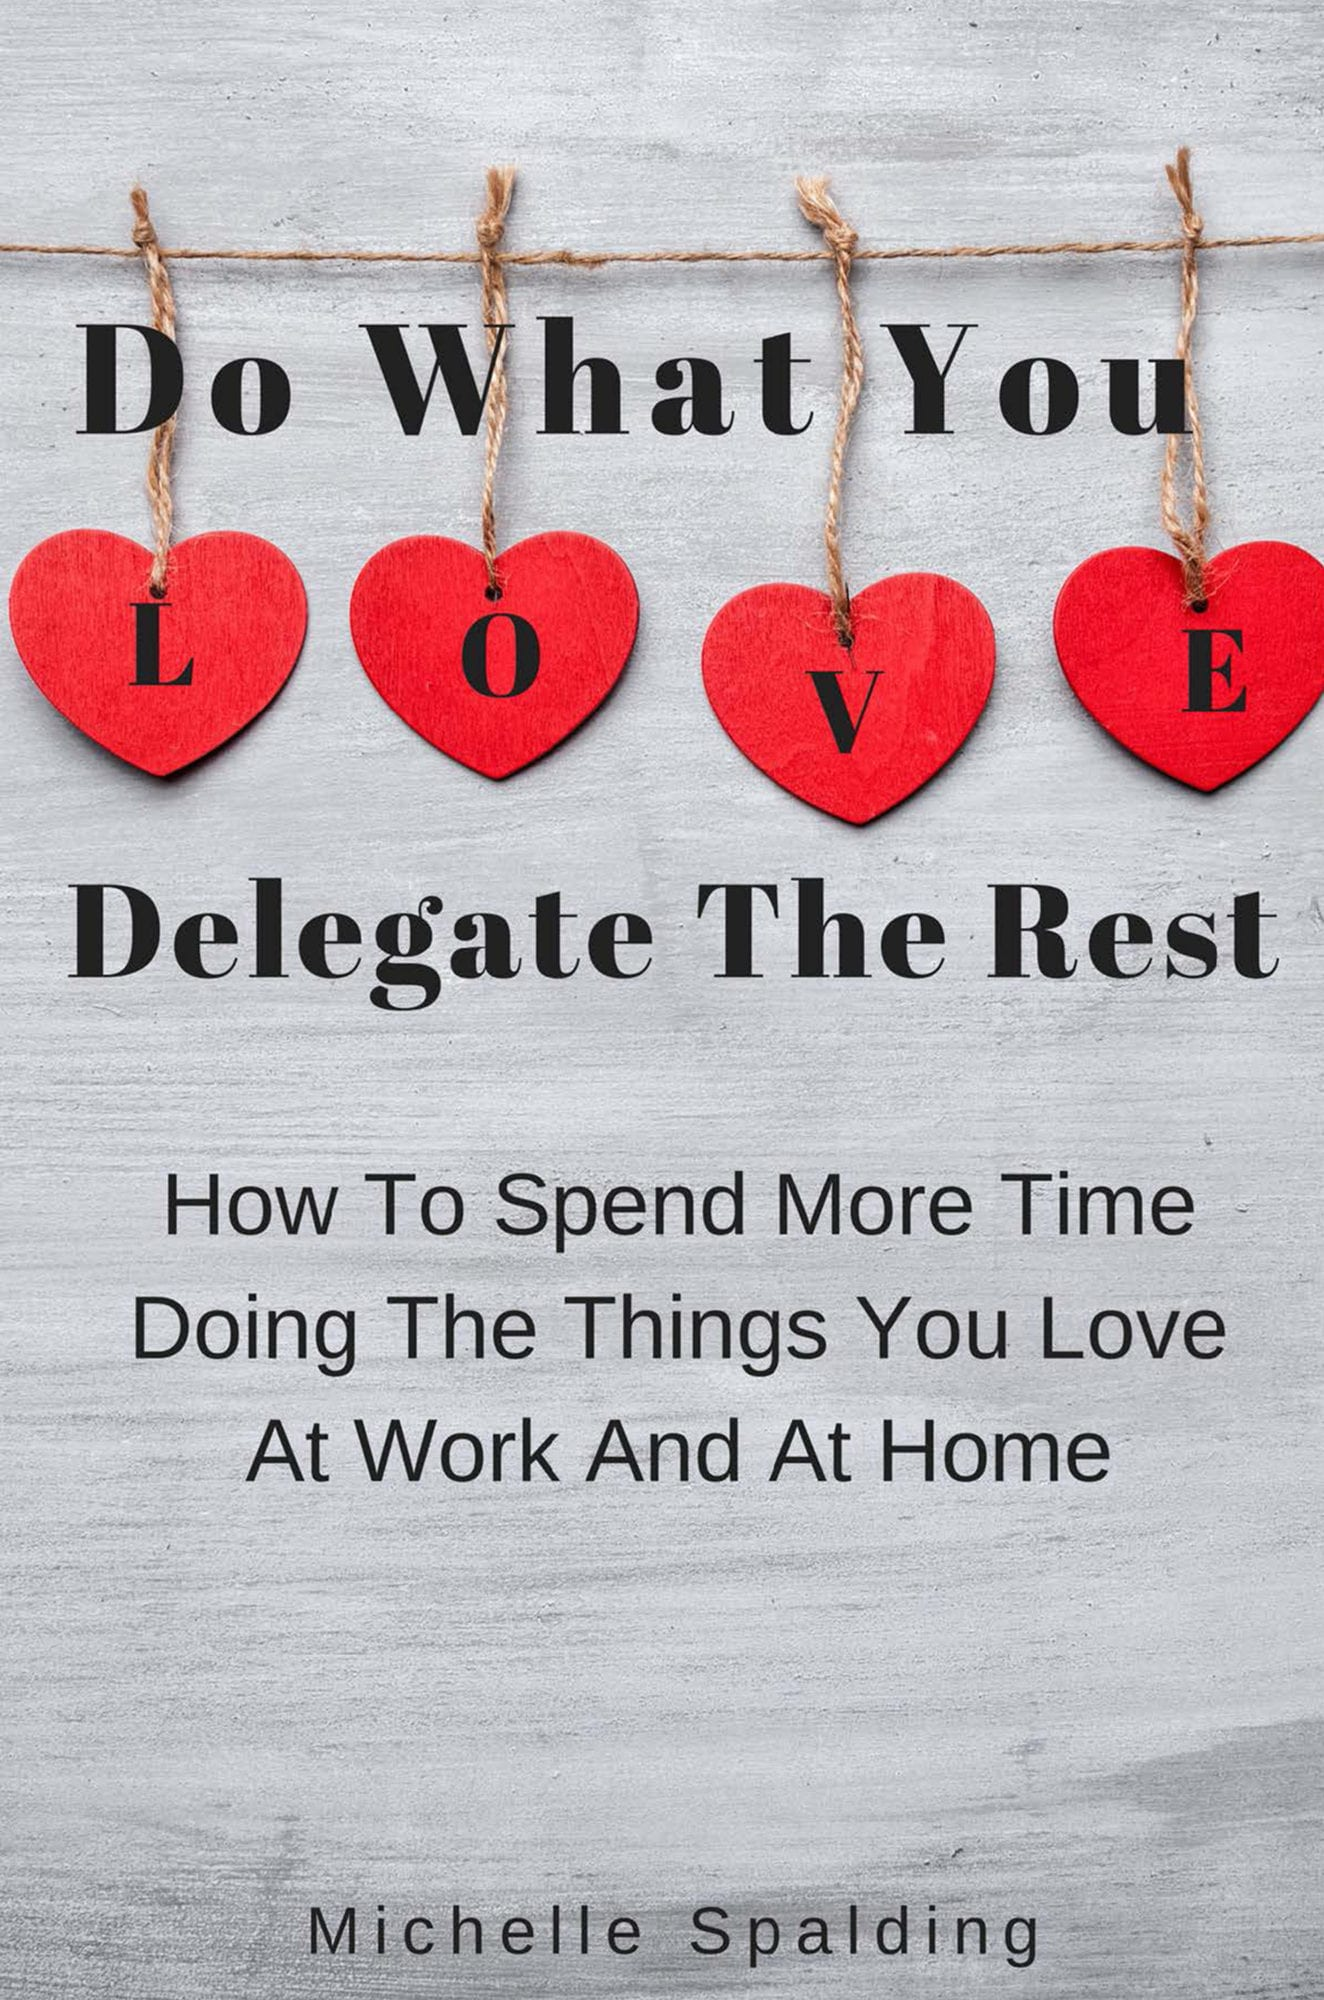 Do What You Love Delegate The Rest